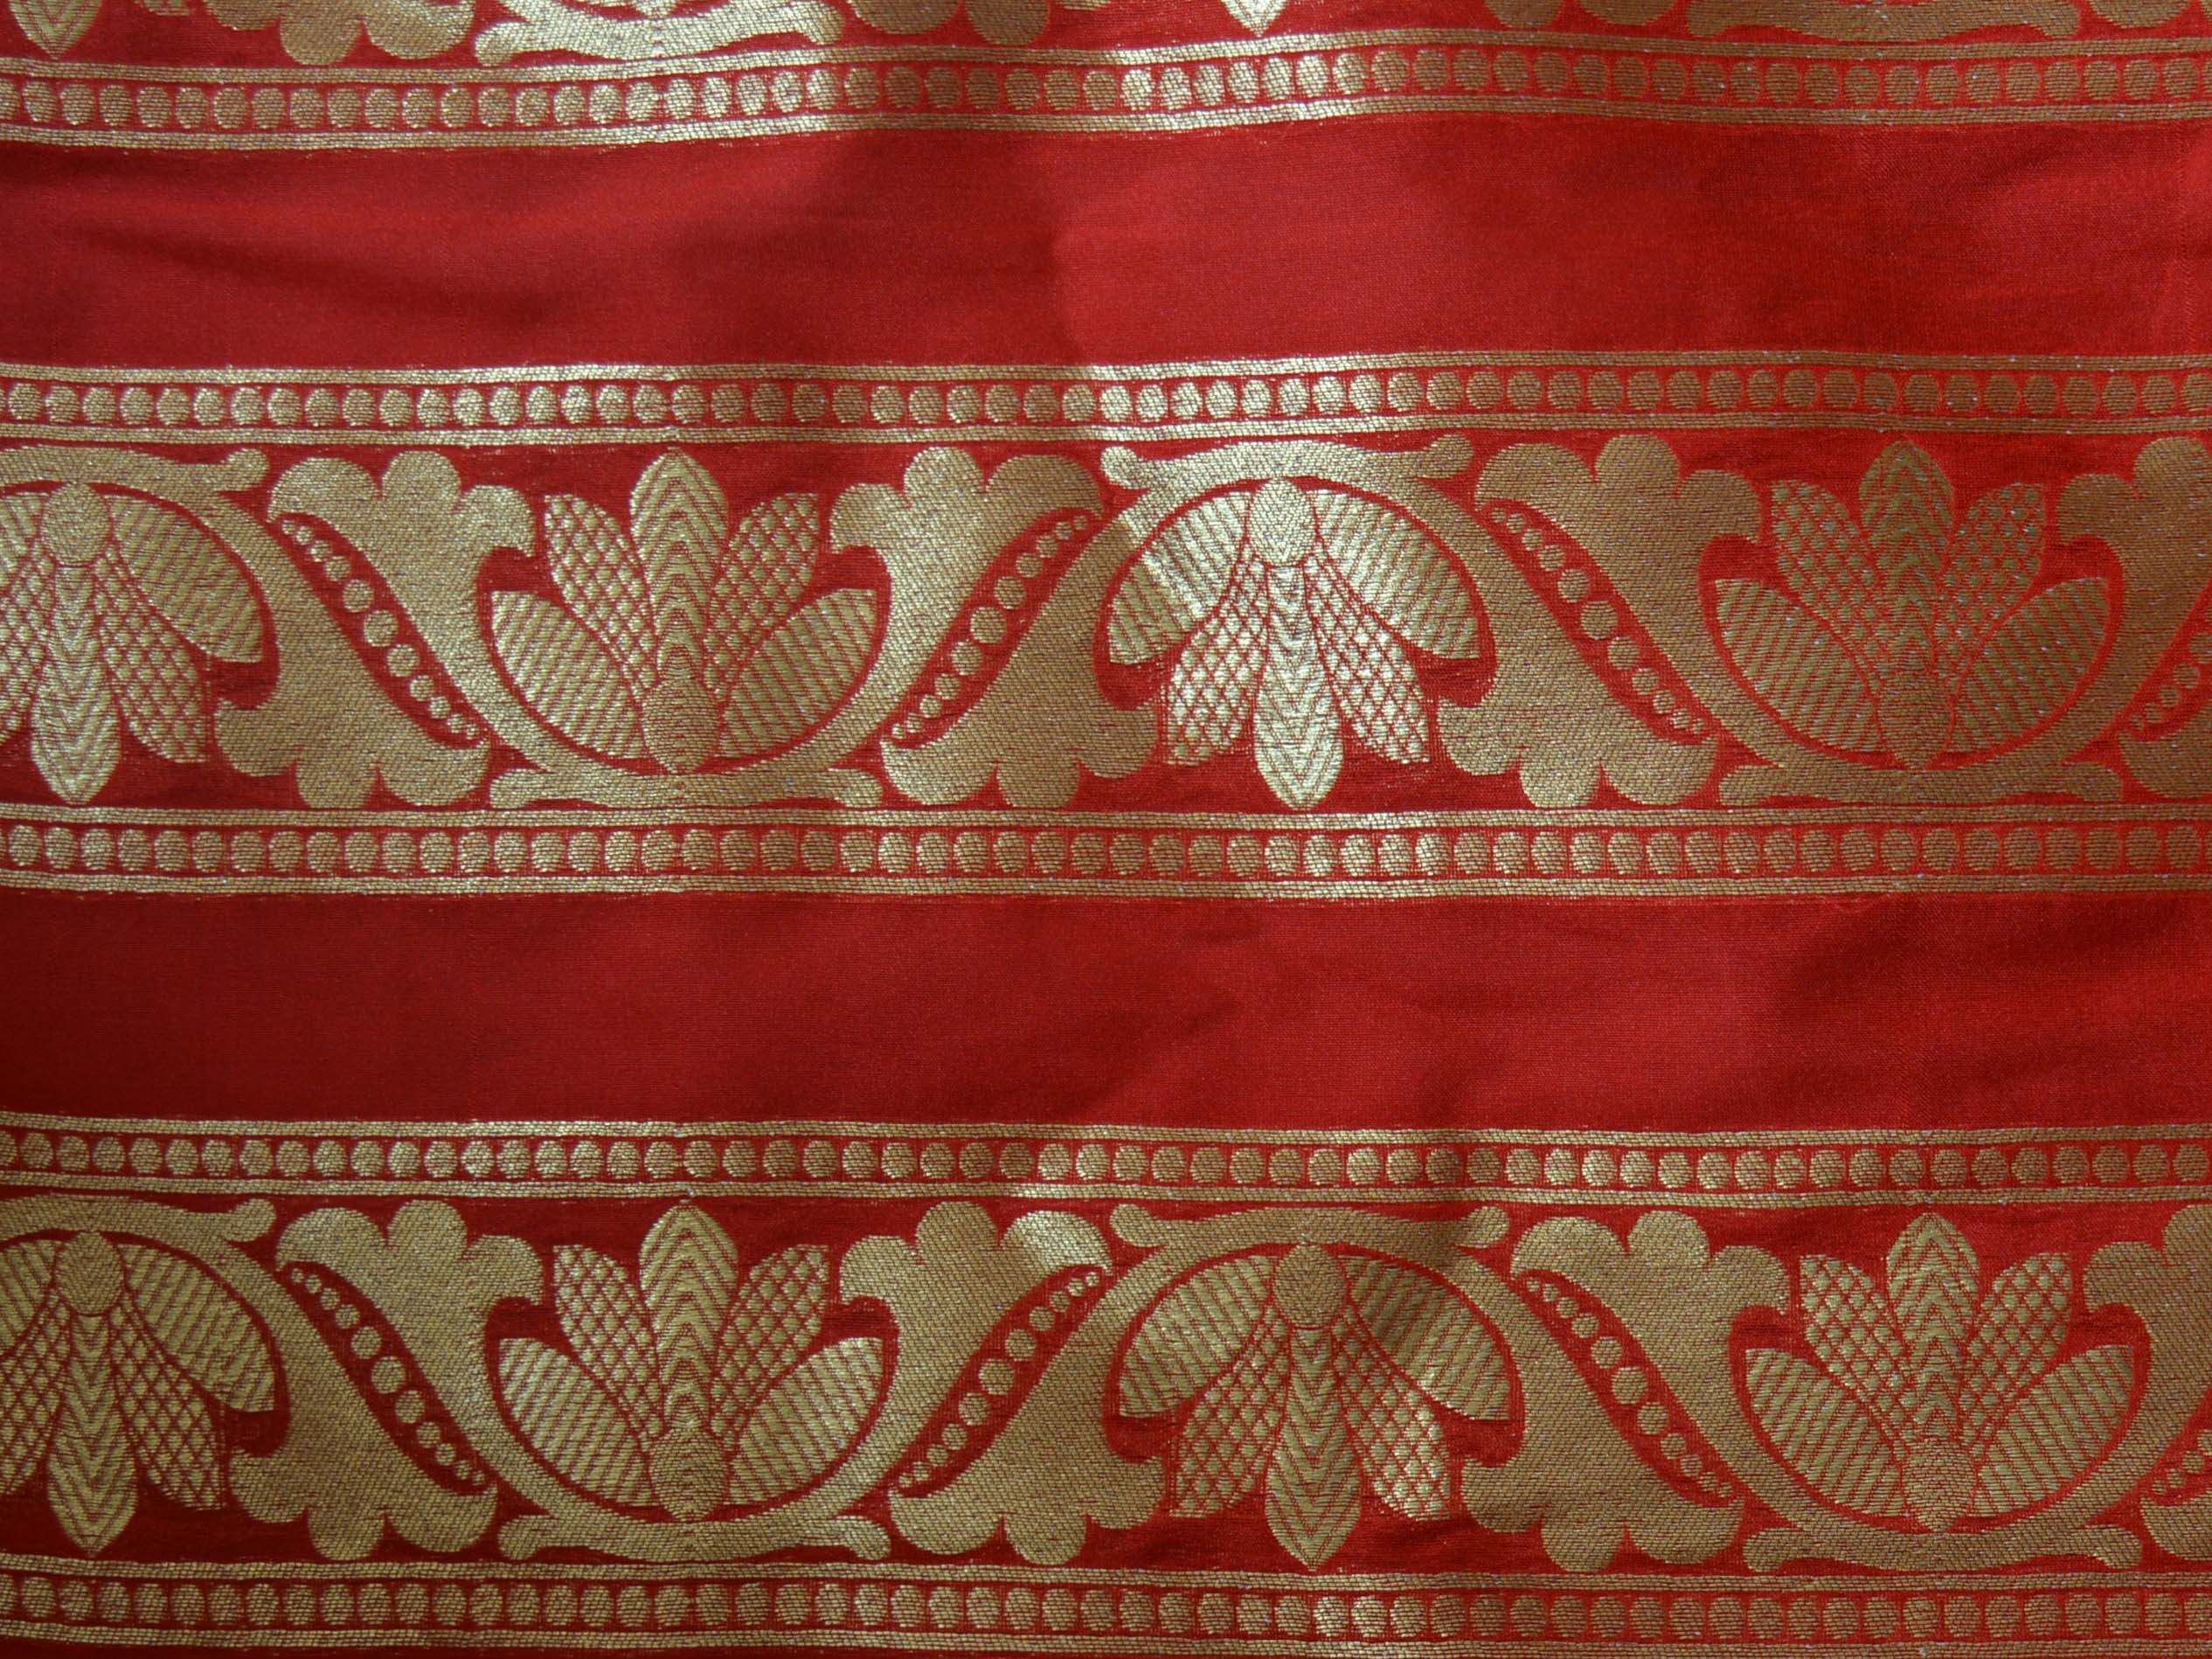 Banarasee Handwoven Art Silk Unstitched Lehenga & Blouse Fabric With Orange Dupatta-Red